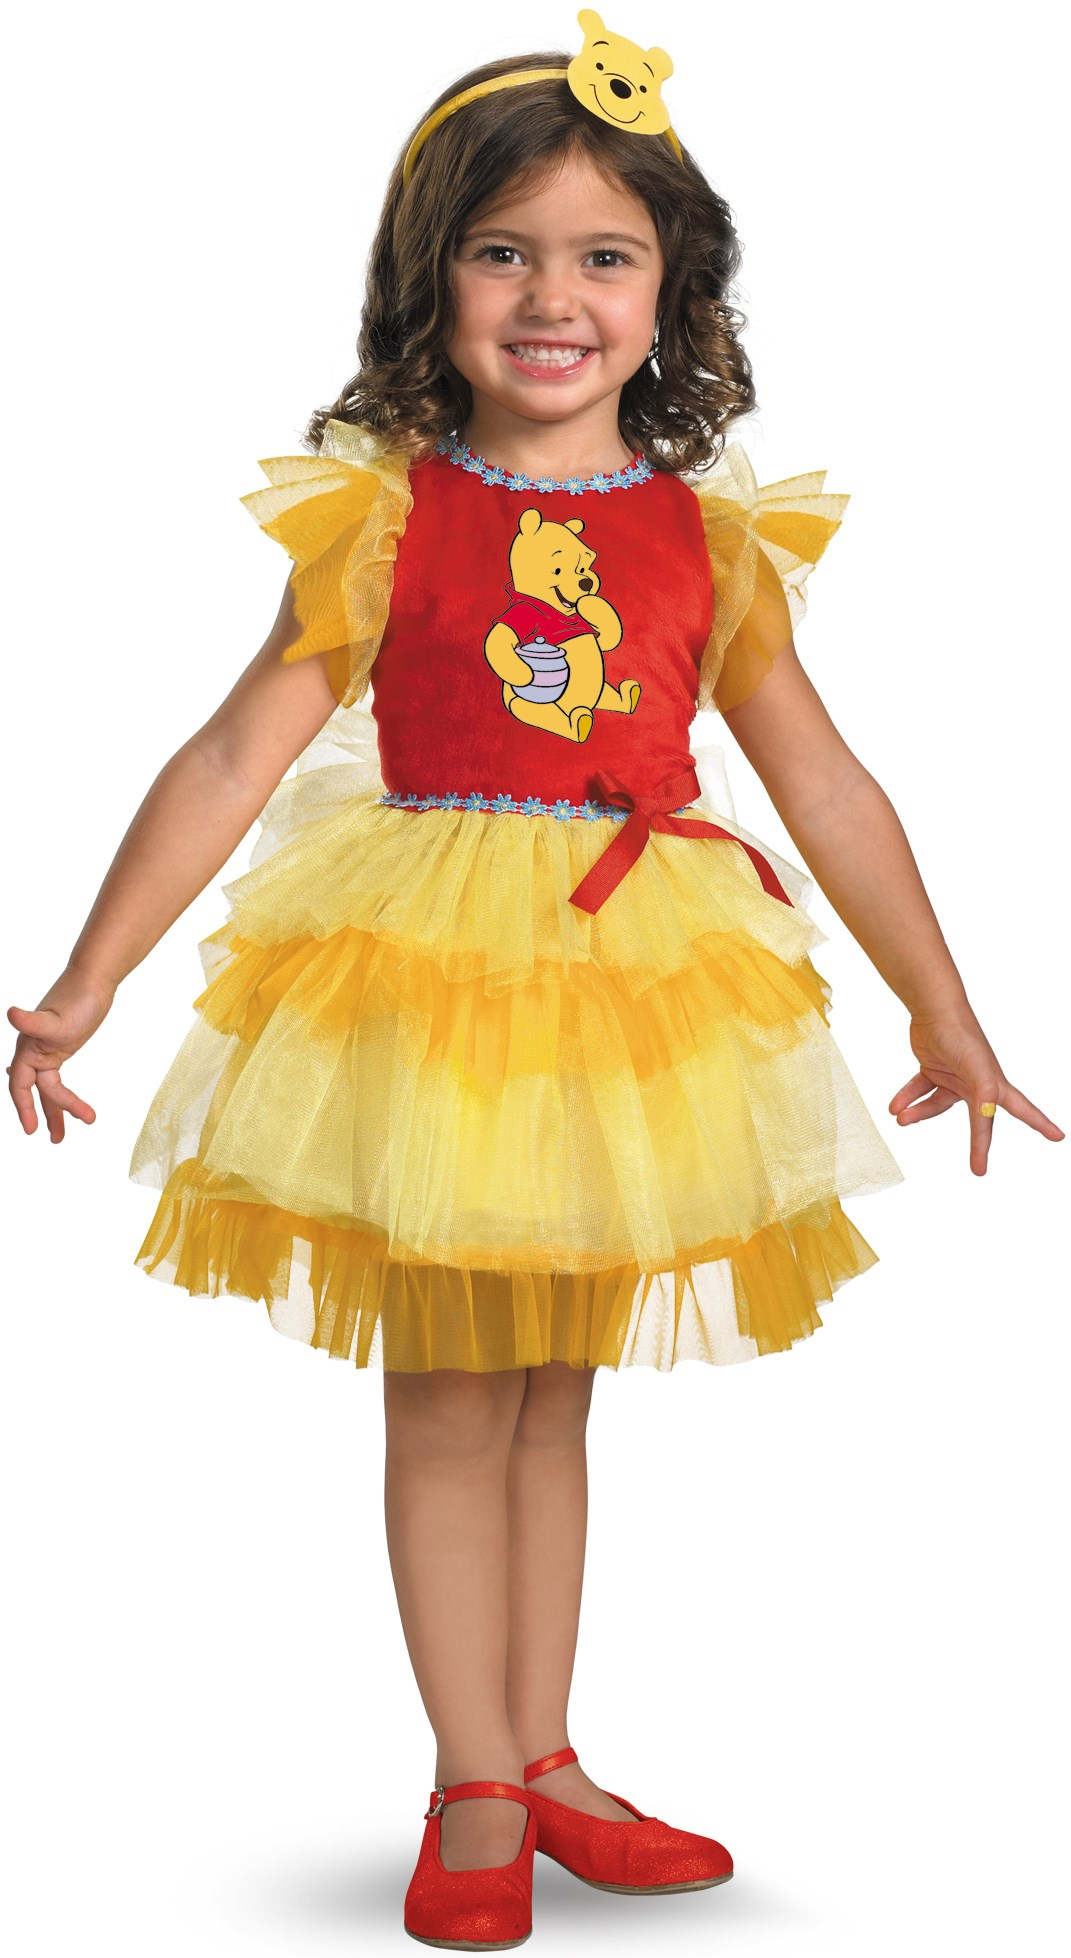 Winnie the Pooh - Frilly Winnie the Pooh Toddler / Child Costume